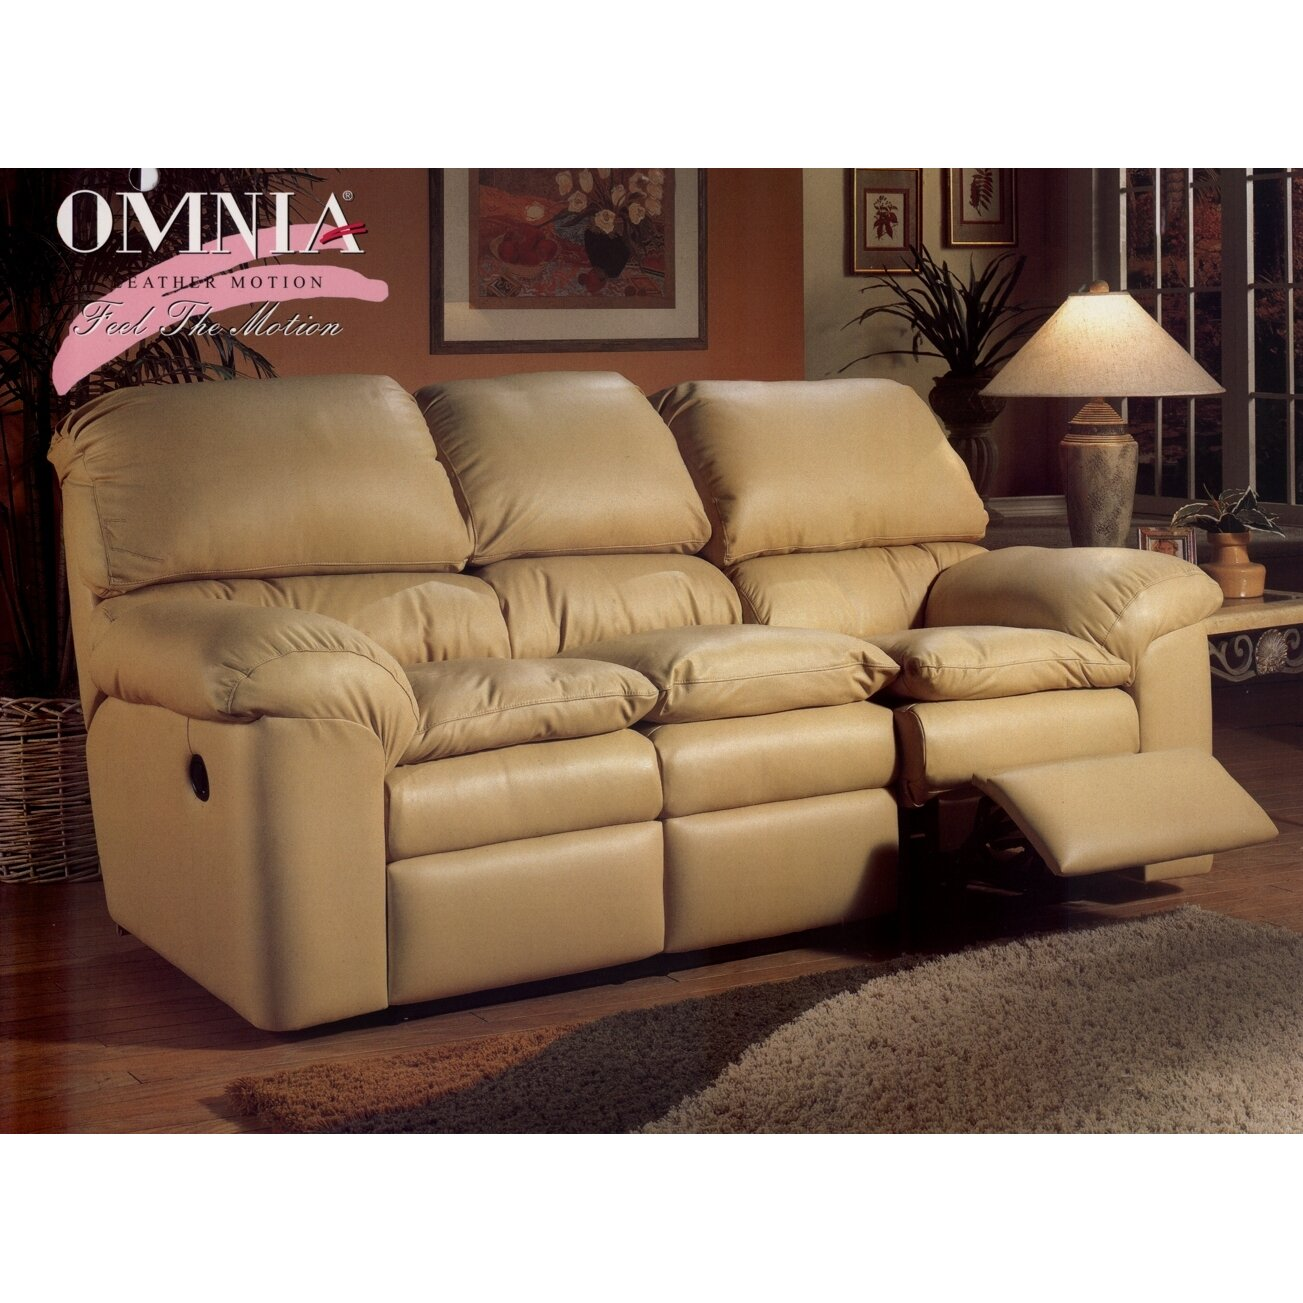 Omnia leather cordova reclining sofa living room set - Living room furniture leather and upholstery ...